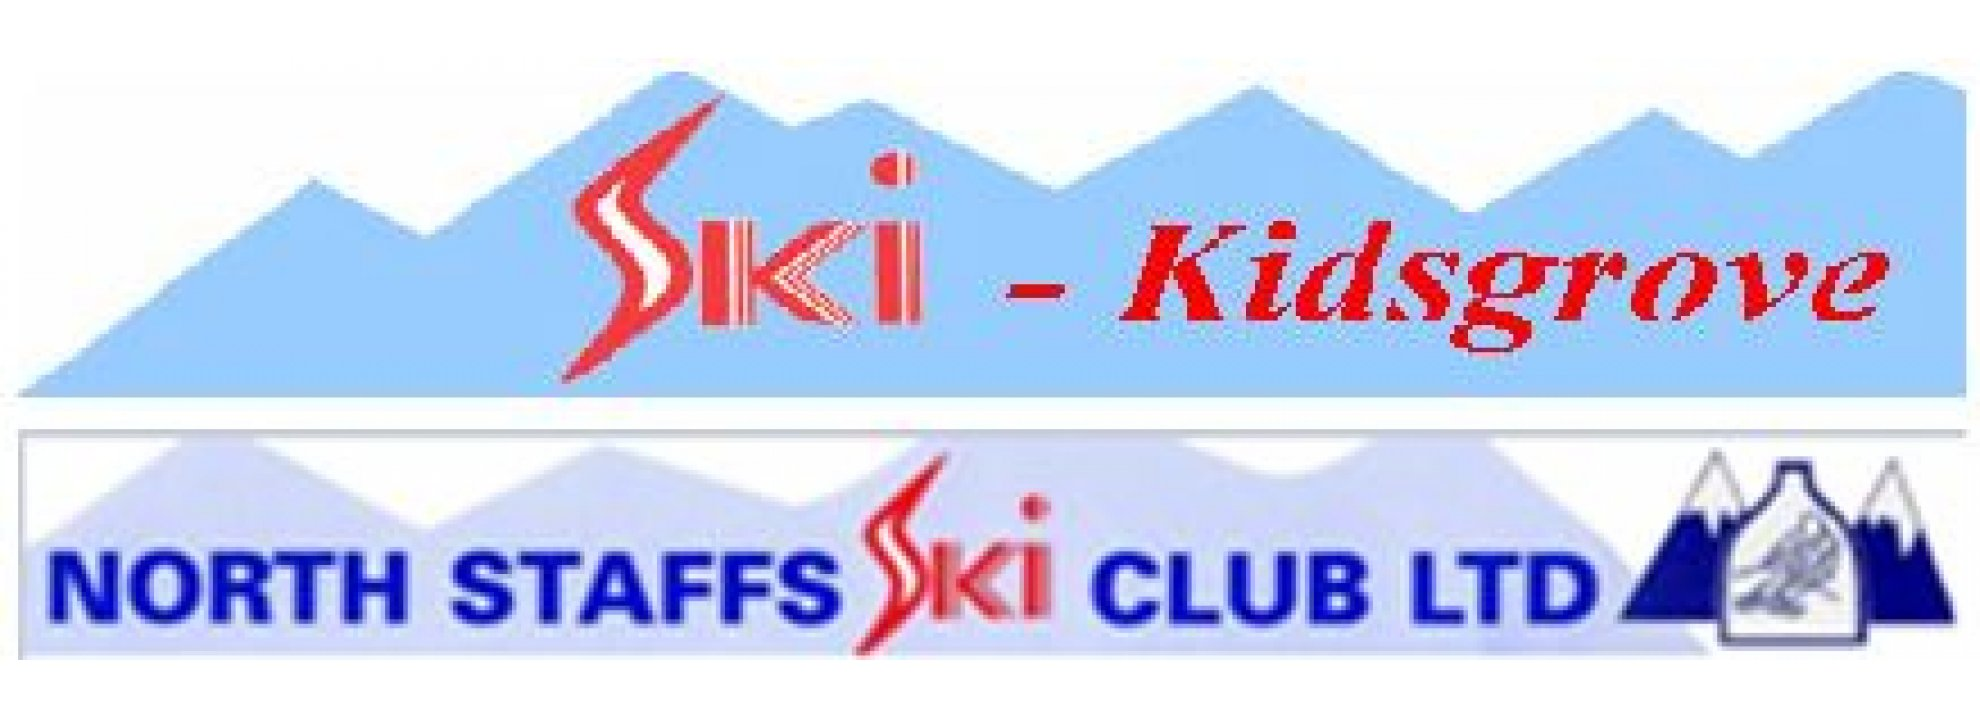 Ski Lessons - Midweek Banner